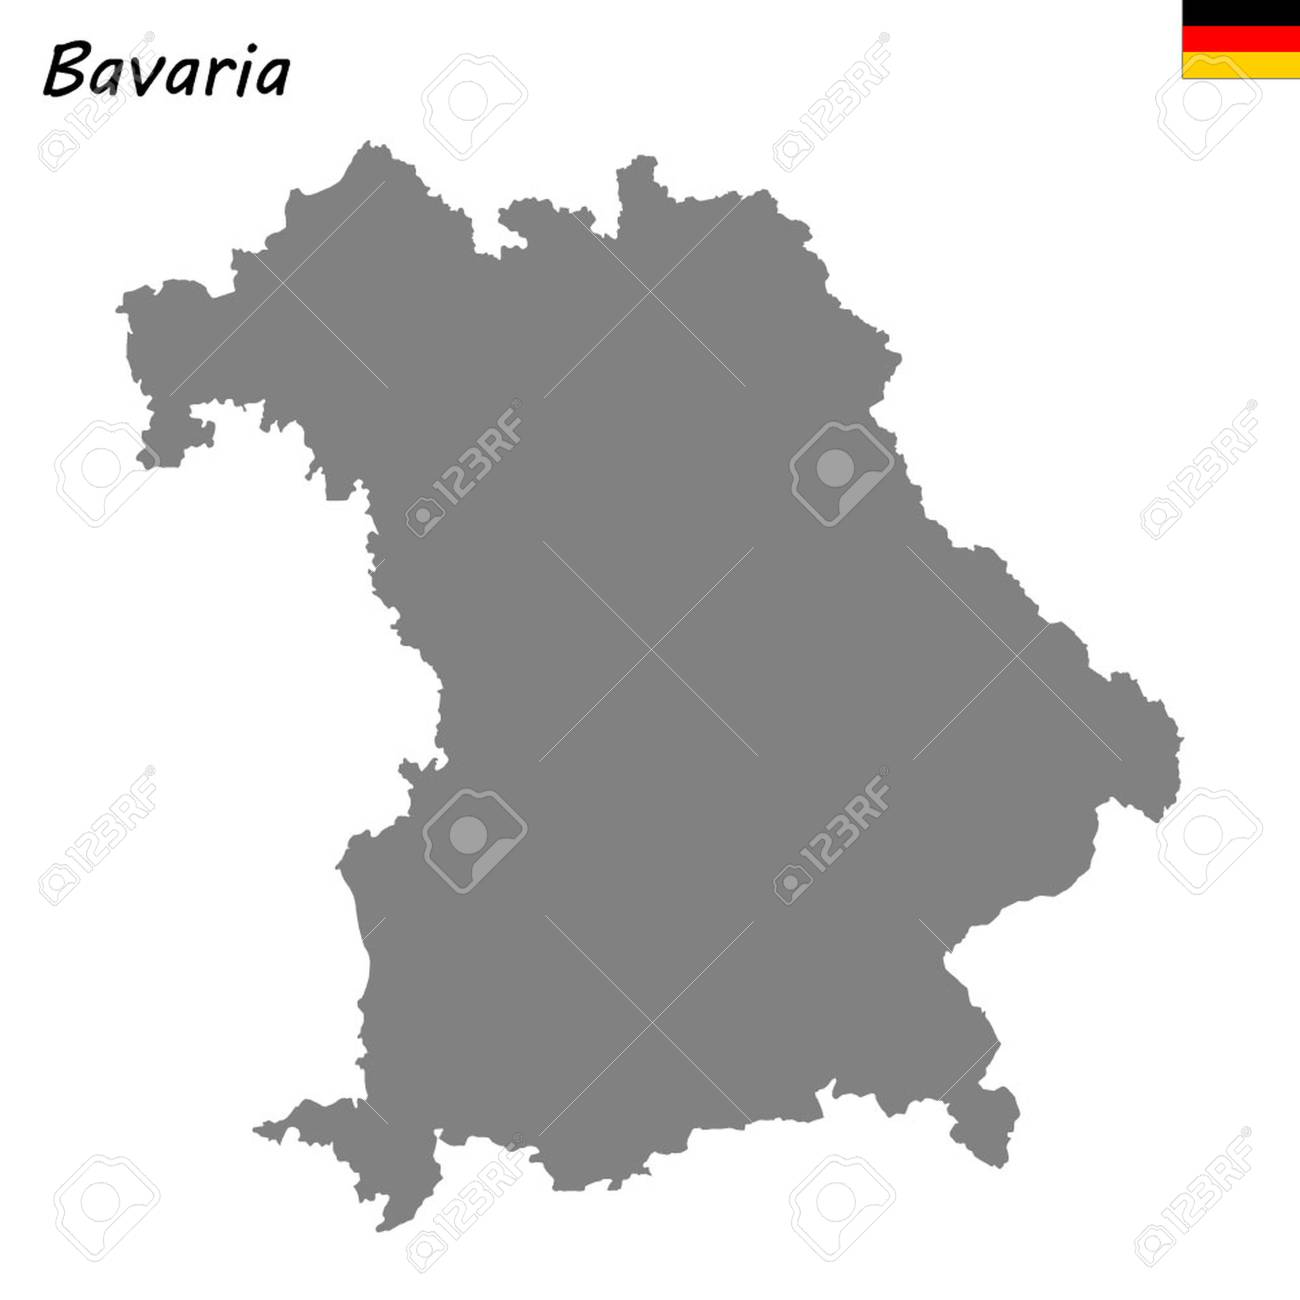 Map Of Germany Bavaria.High Quality Map Is A State Of Germany Bavaria Royalty Free